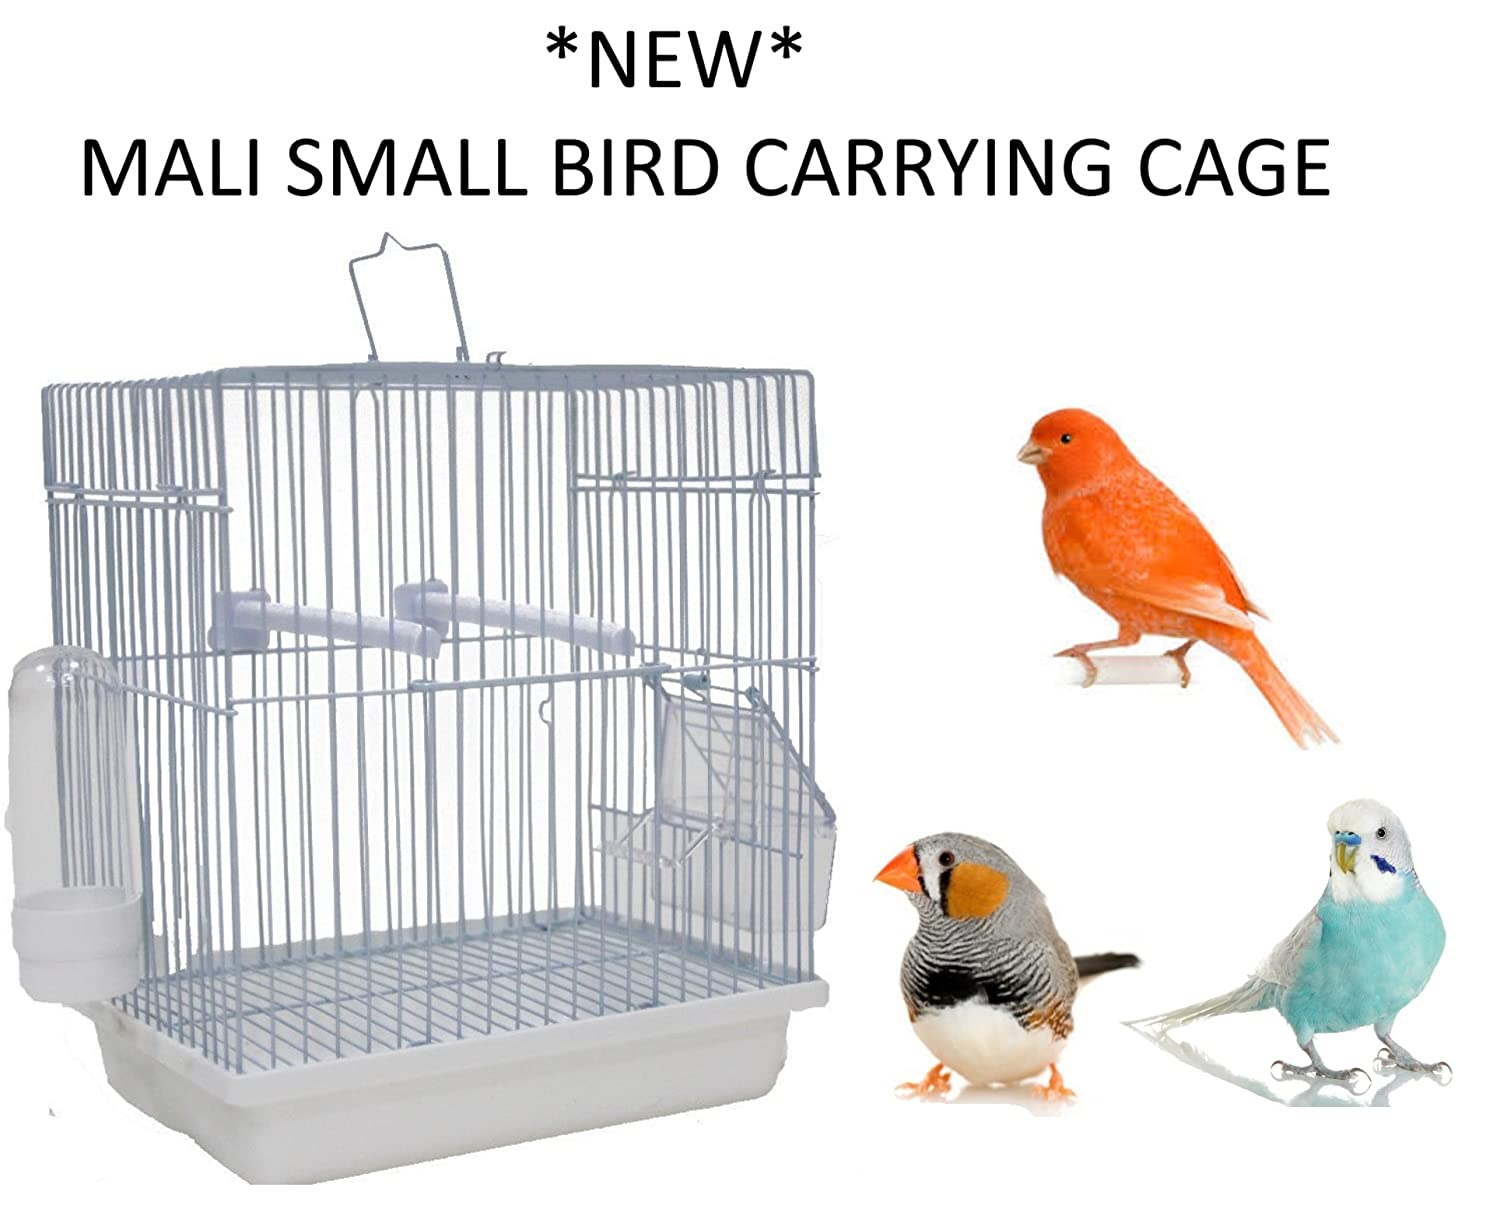 *NEW* SKY PETS MALI SMALL BIRD CARRYING TRANSPORT CAGE BUDGIE CANARY FINCH 1899